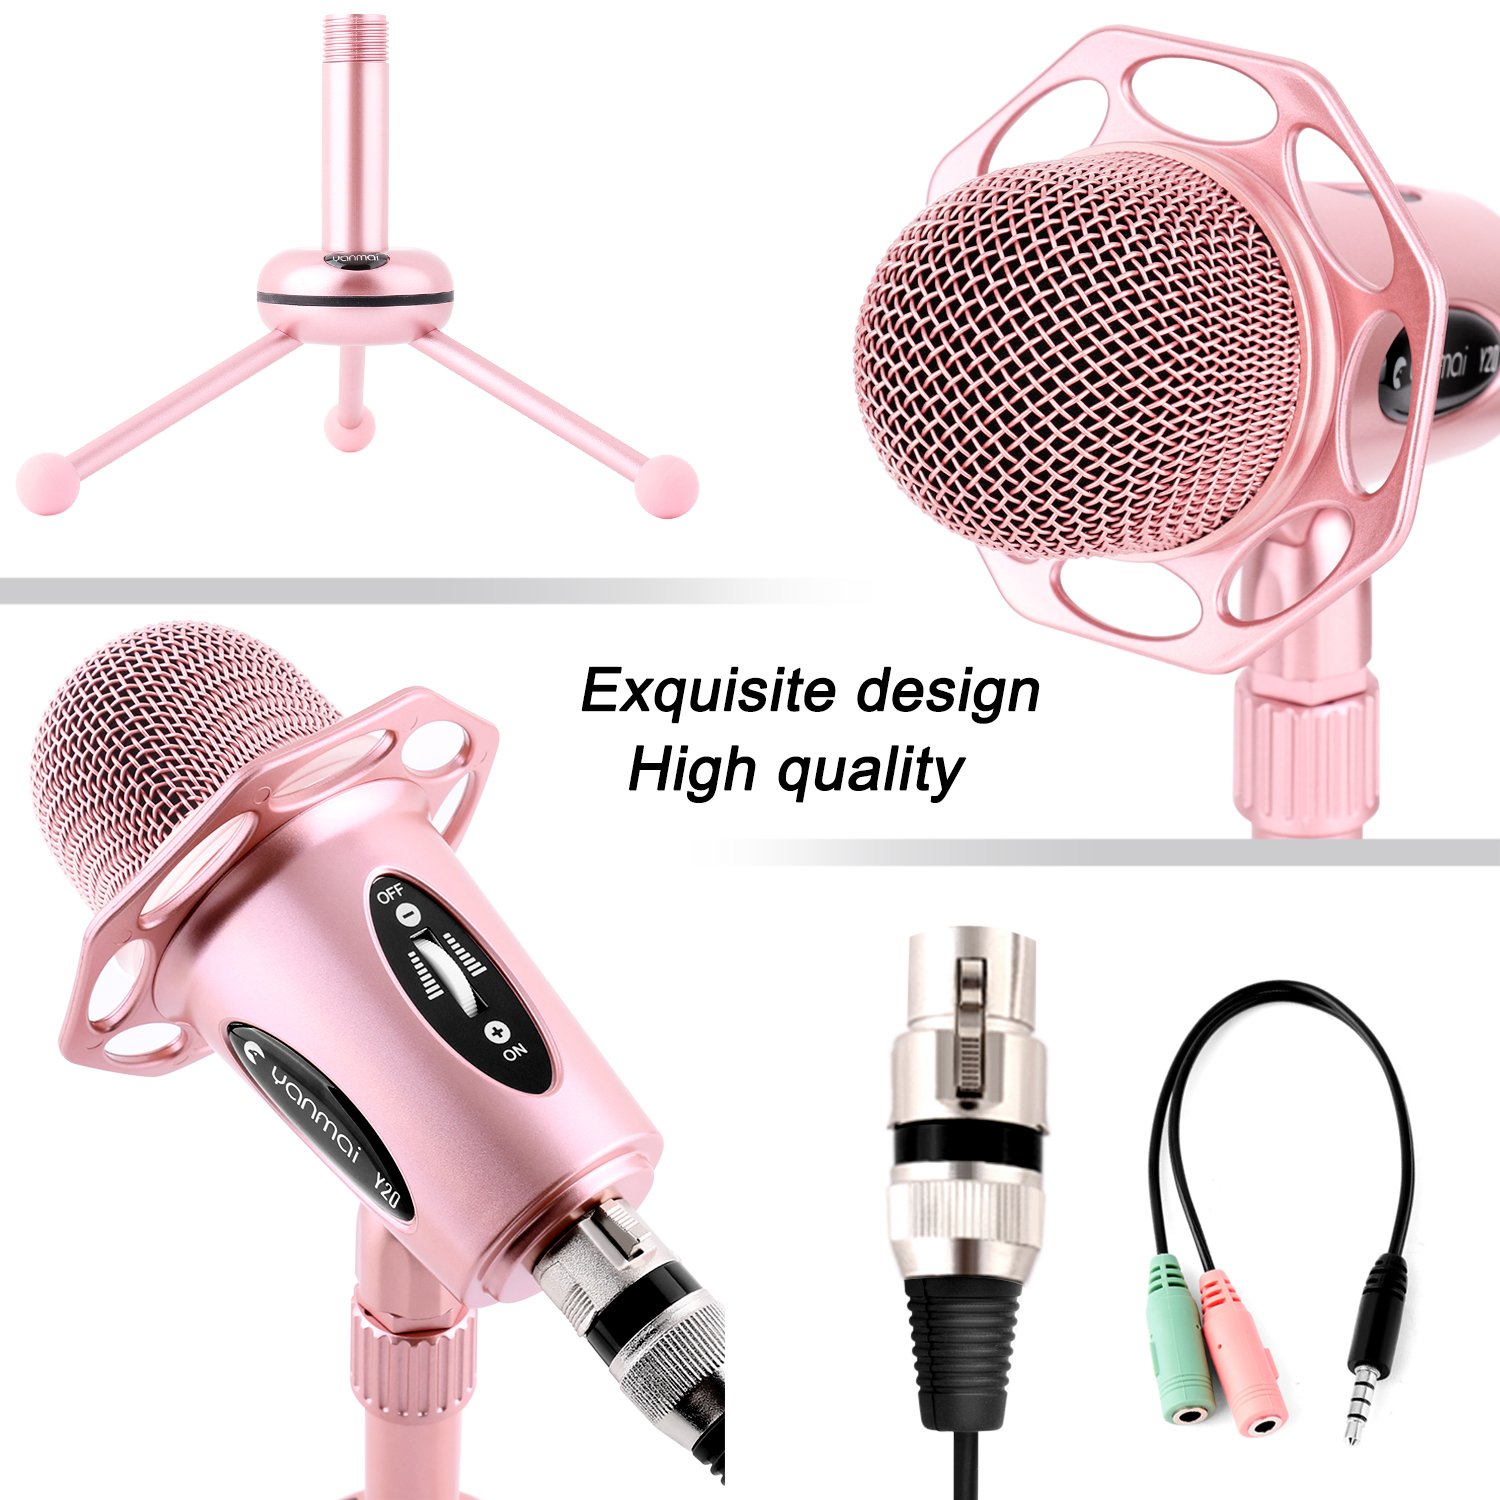 Professional Condenser Microphone, Venoro Plug & Play Home Studio Condenser Microphone with Tripod for PC, Computer, Phone for Studio Recording, Skype, Games, Podcast, Broadcasting (Rose Gold) ... by Venoro (Image #5)